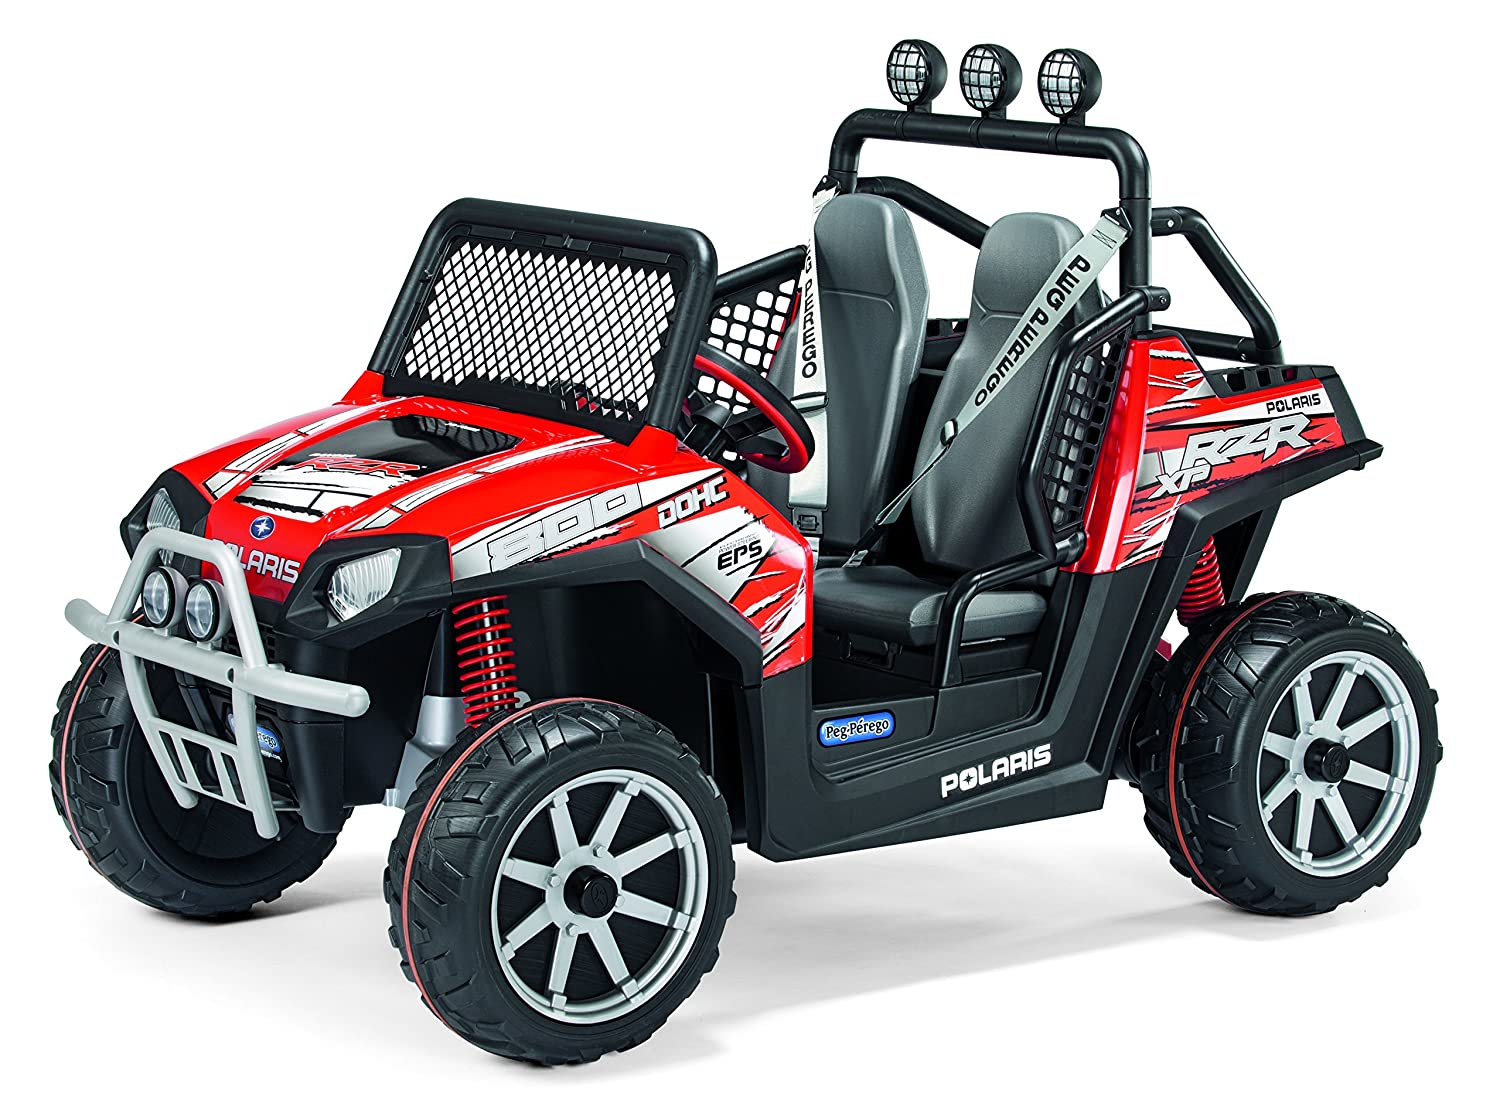 Peg Perego Electric Car For Kids Ride On Rzr Polaris Red